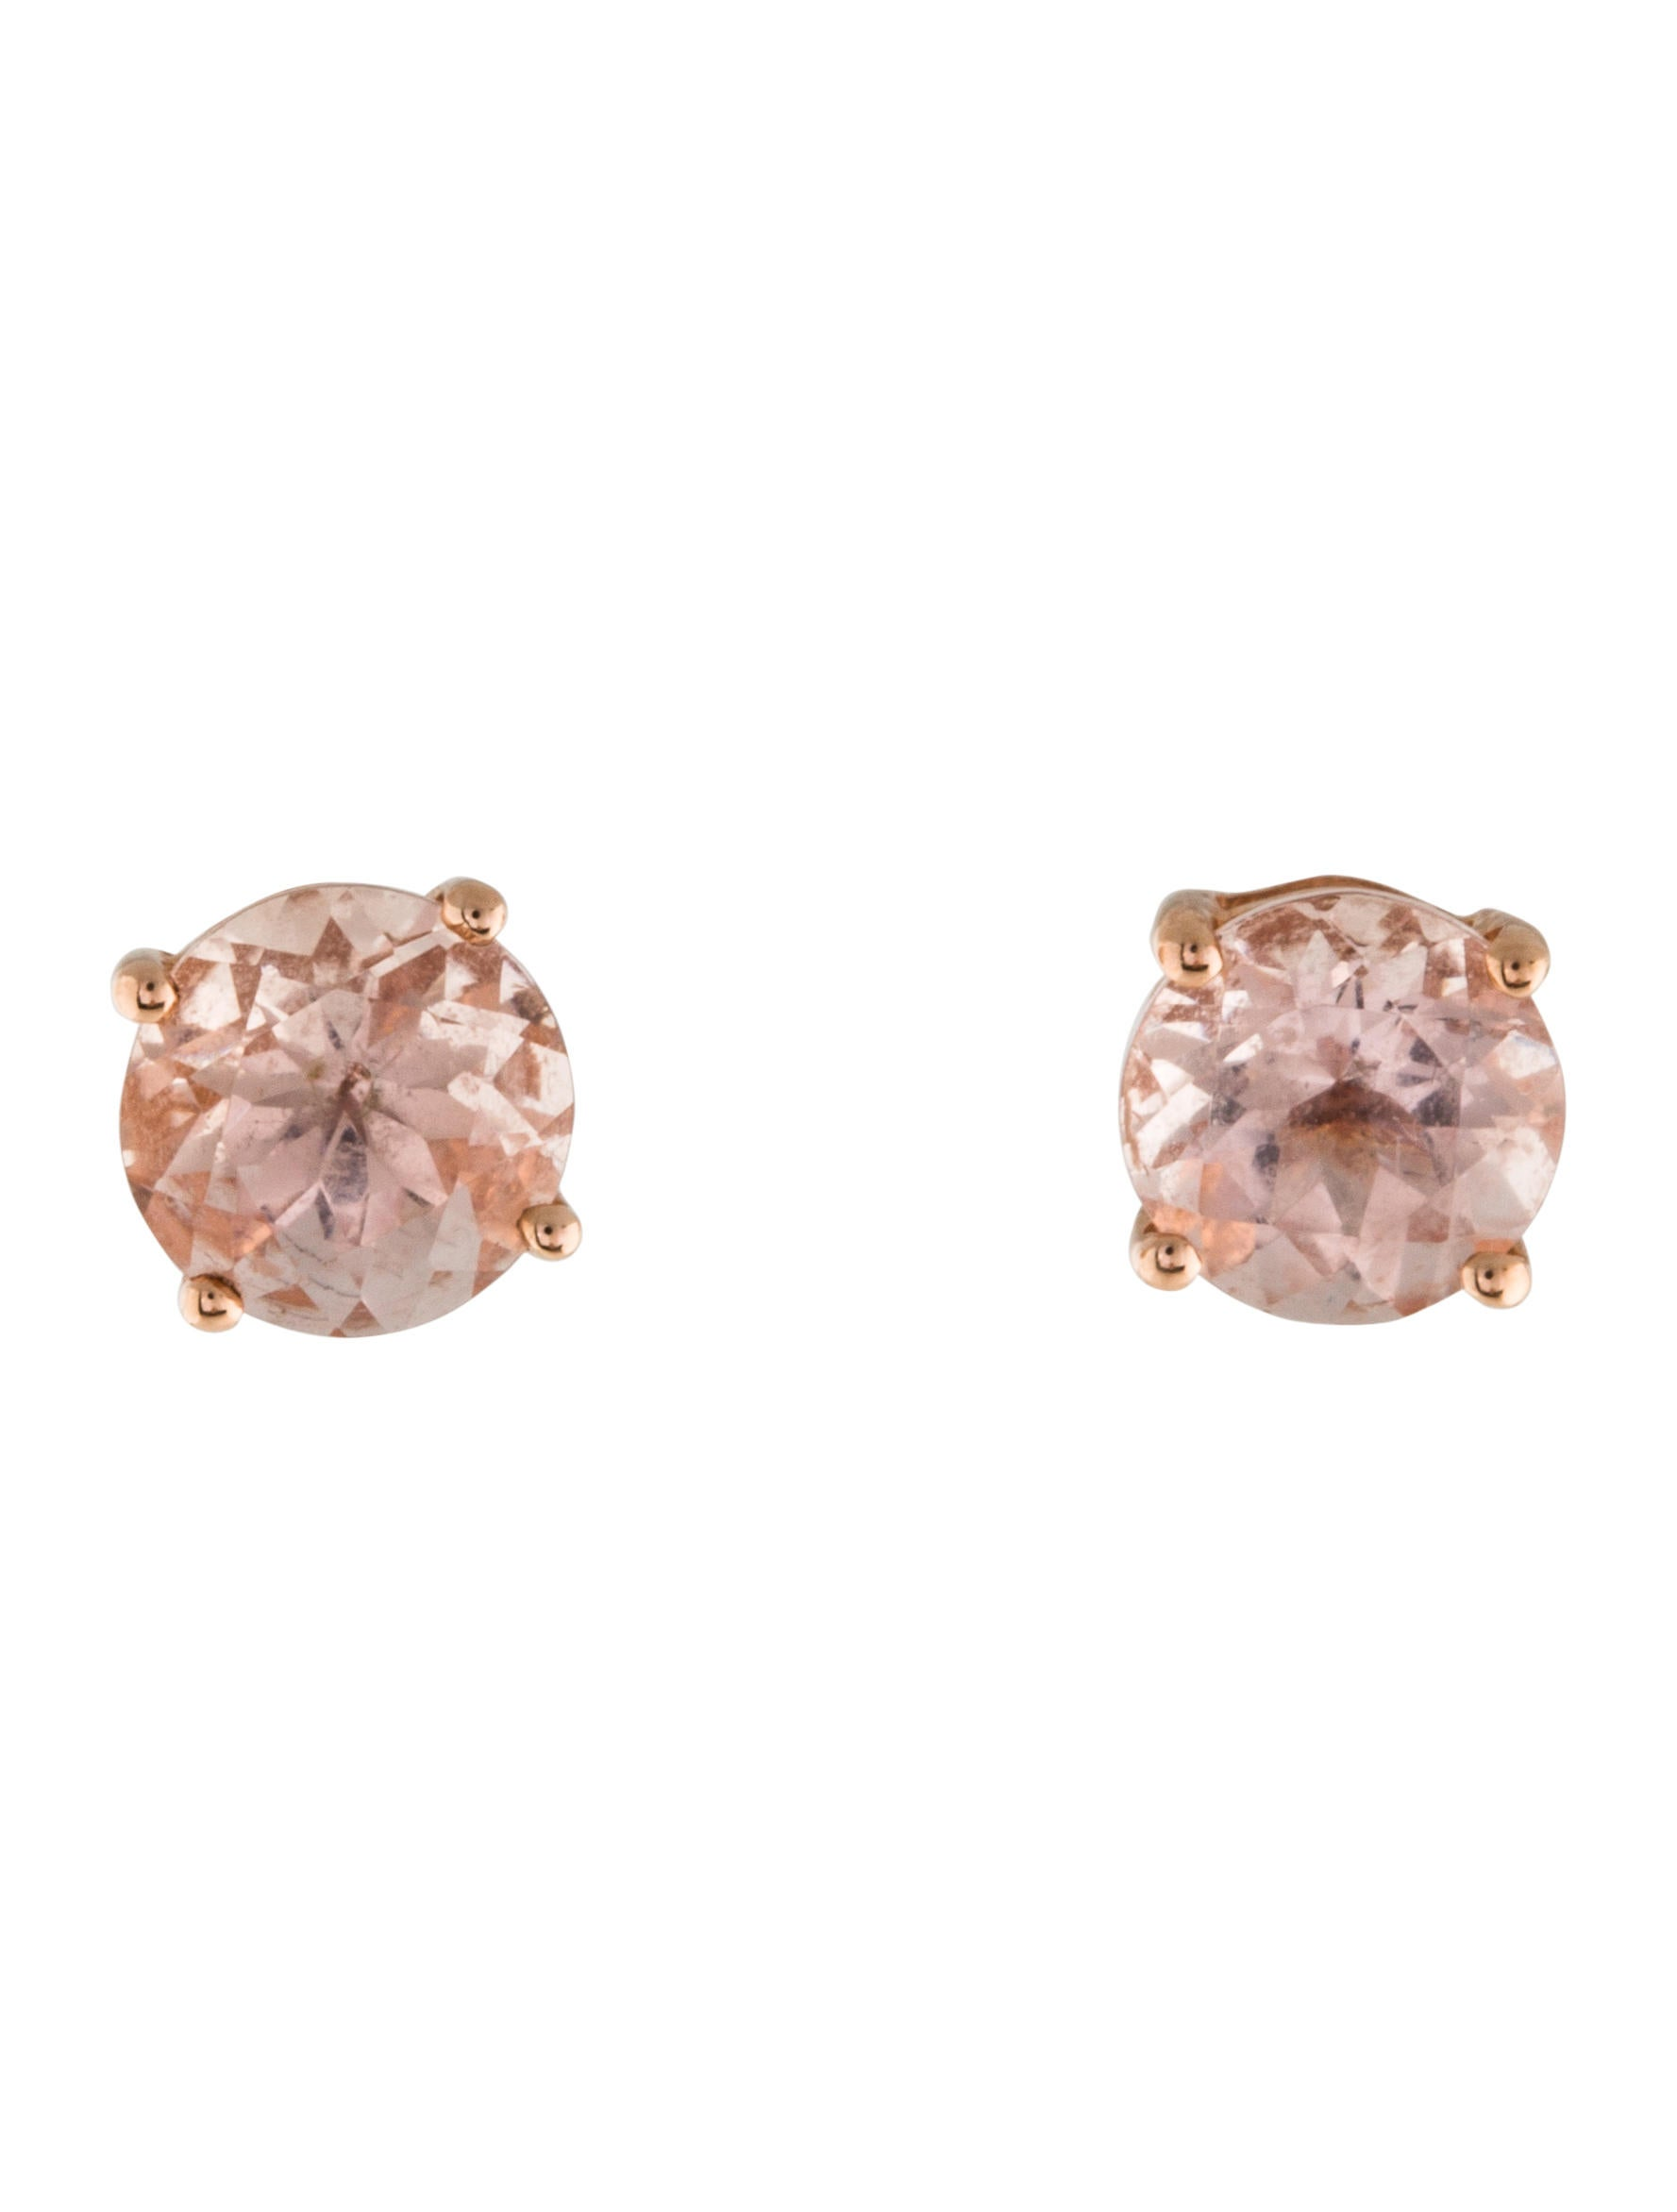 diamonds earrings carat in rose tw morganite with stud gold of